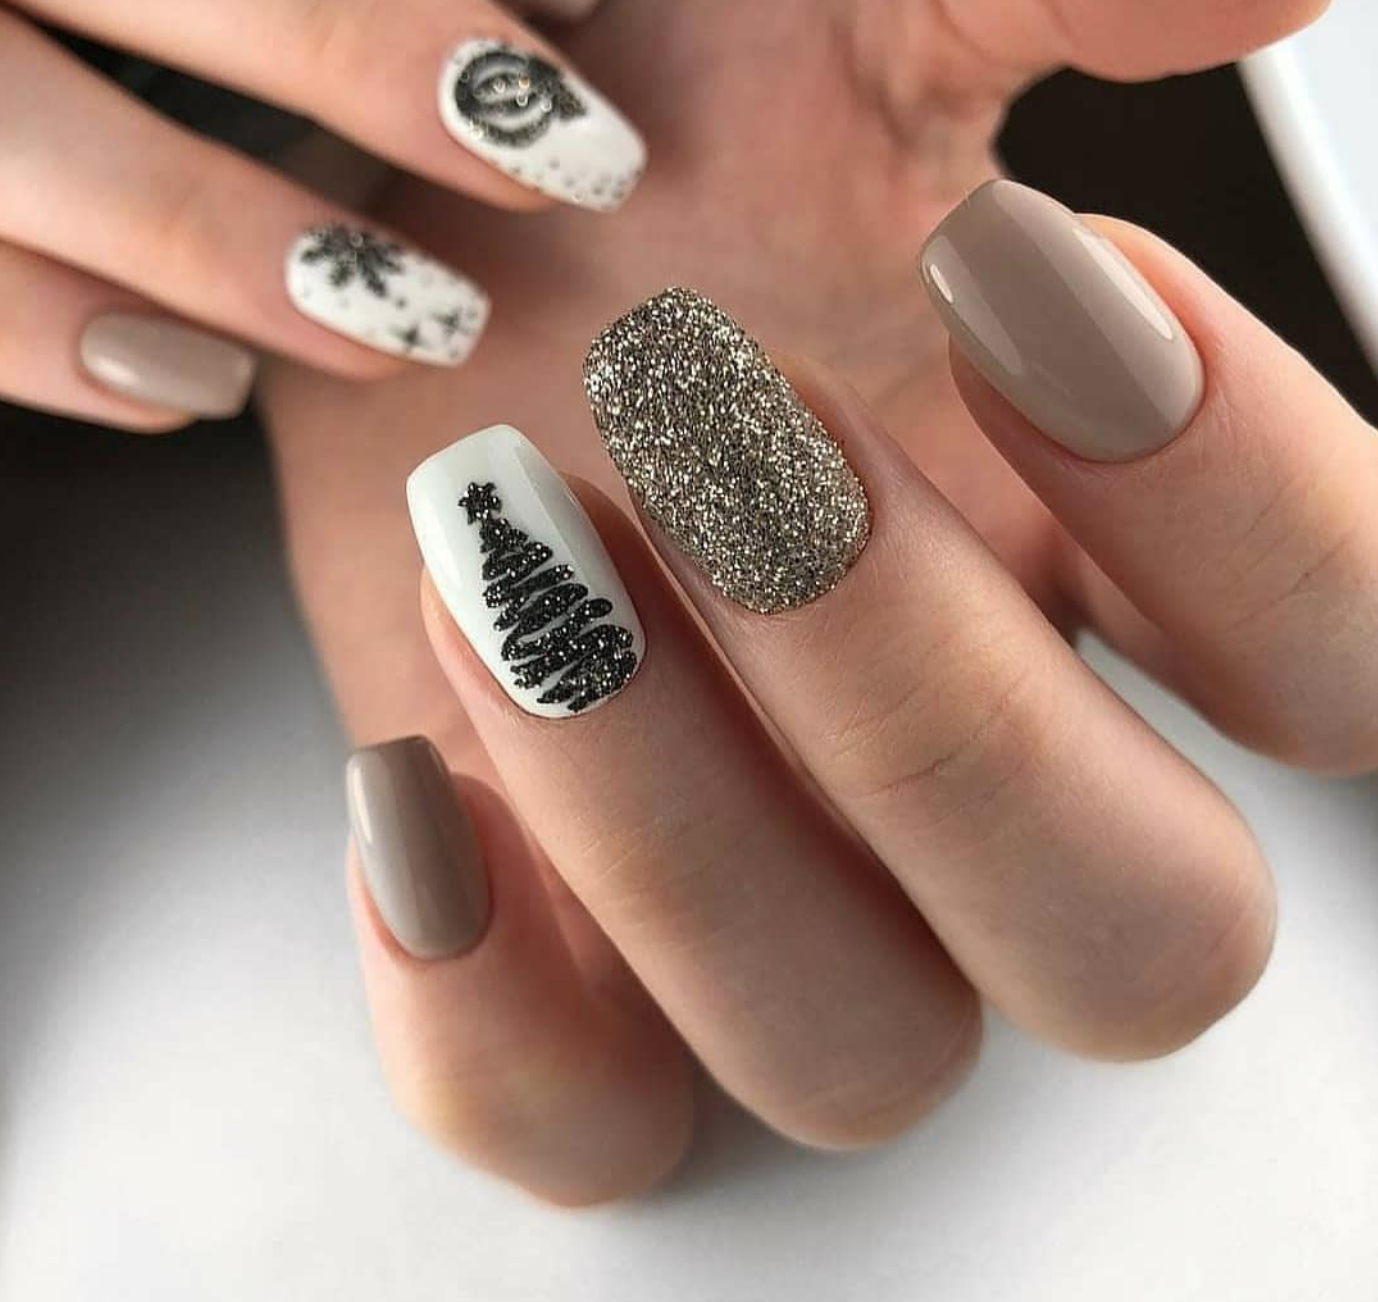 21 Ridiculously Cute Winter Nail Designs To Try Th